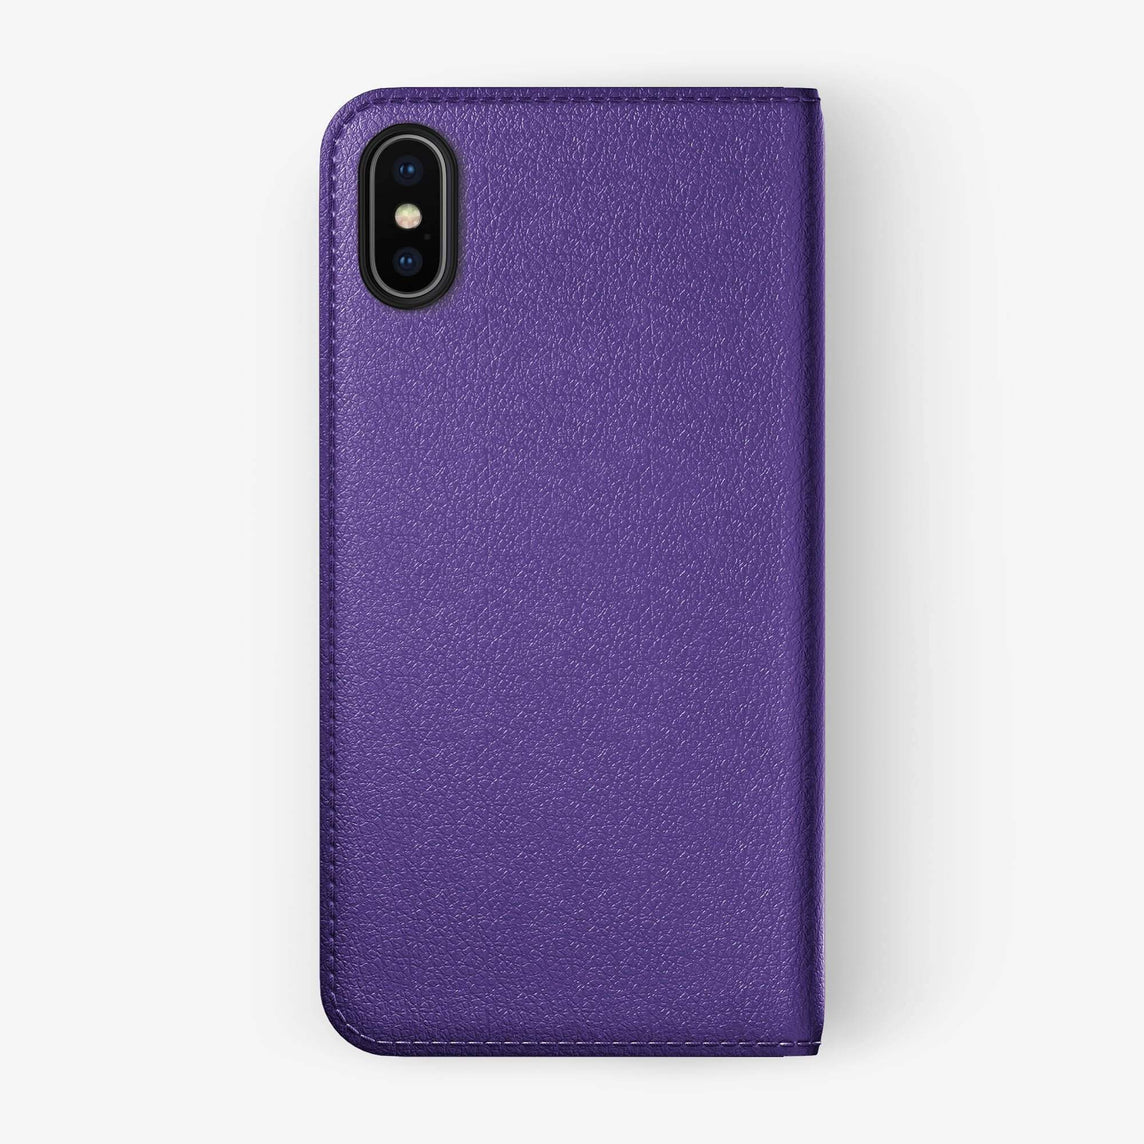 Violet Calfskin iPhone Folio Case for iPhone XS Max finishing black - Hadoro Luxury Cases img5